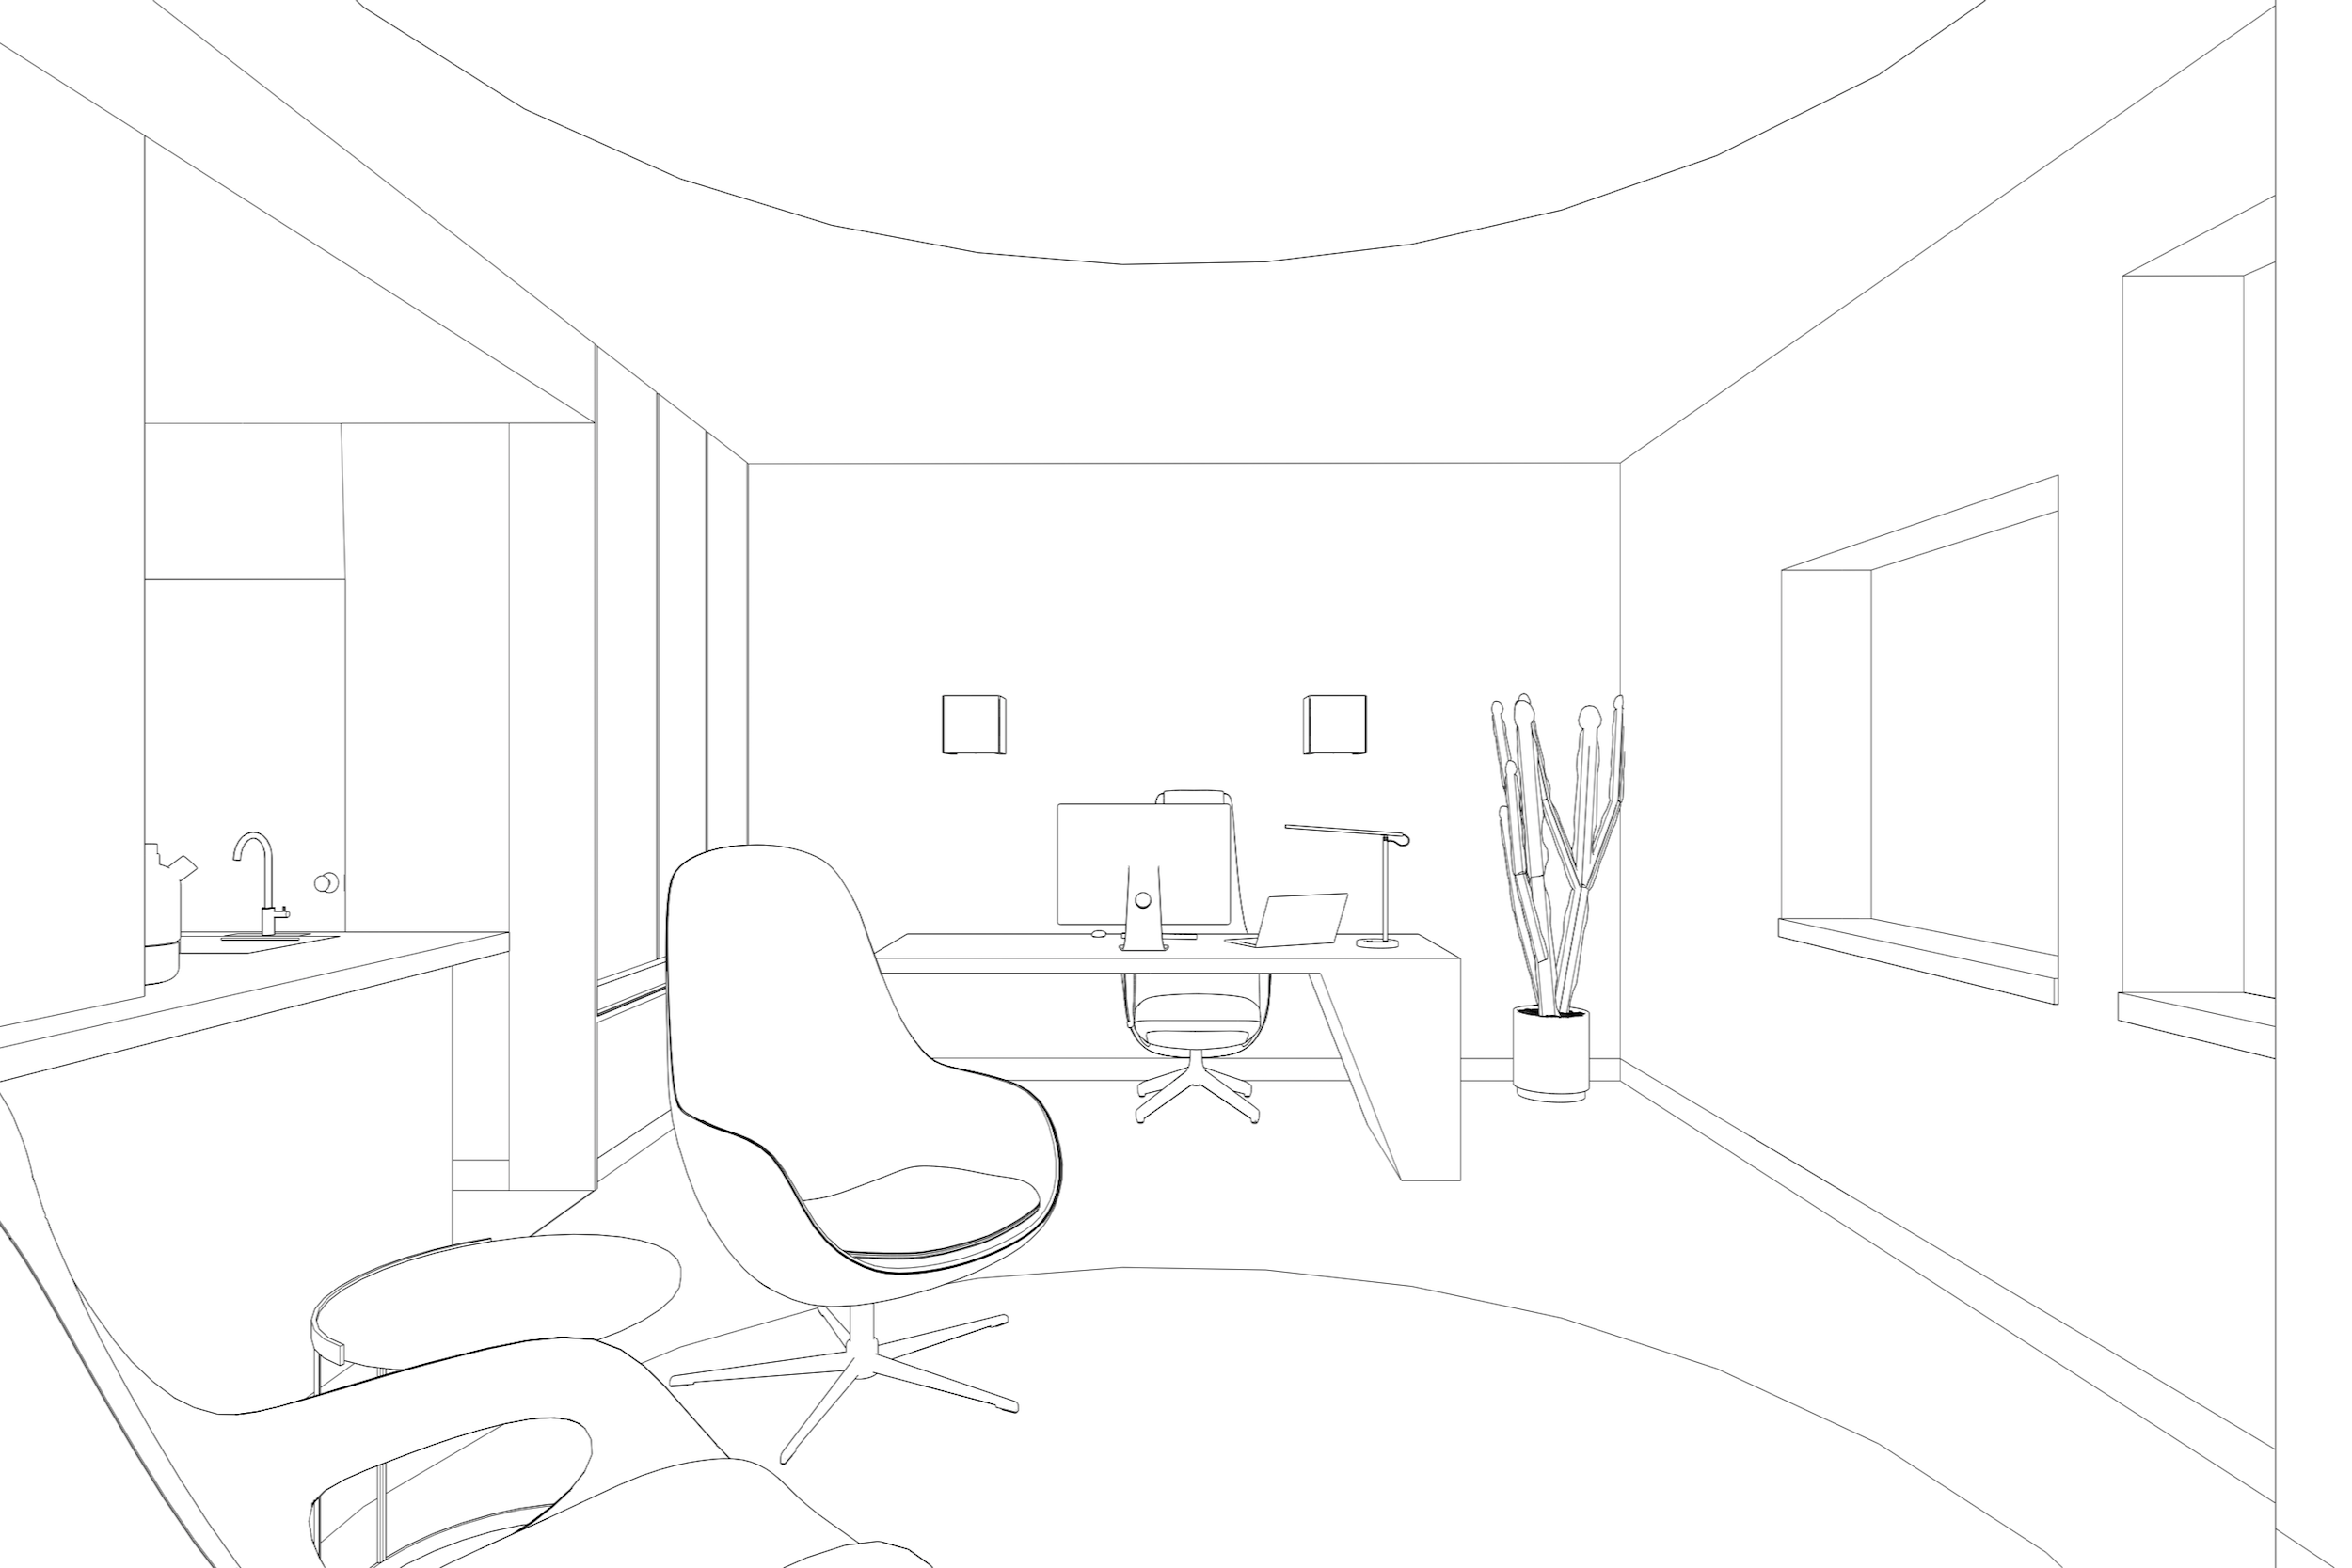 Line rendering of Lola Cwikowski studio office project with interview chairs, executive desk, and kitchenette.